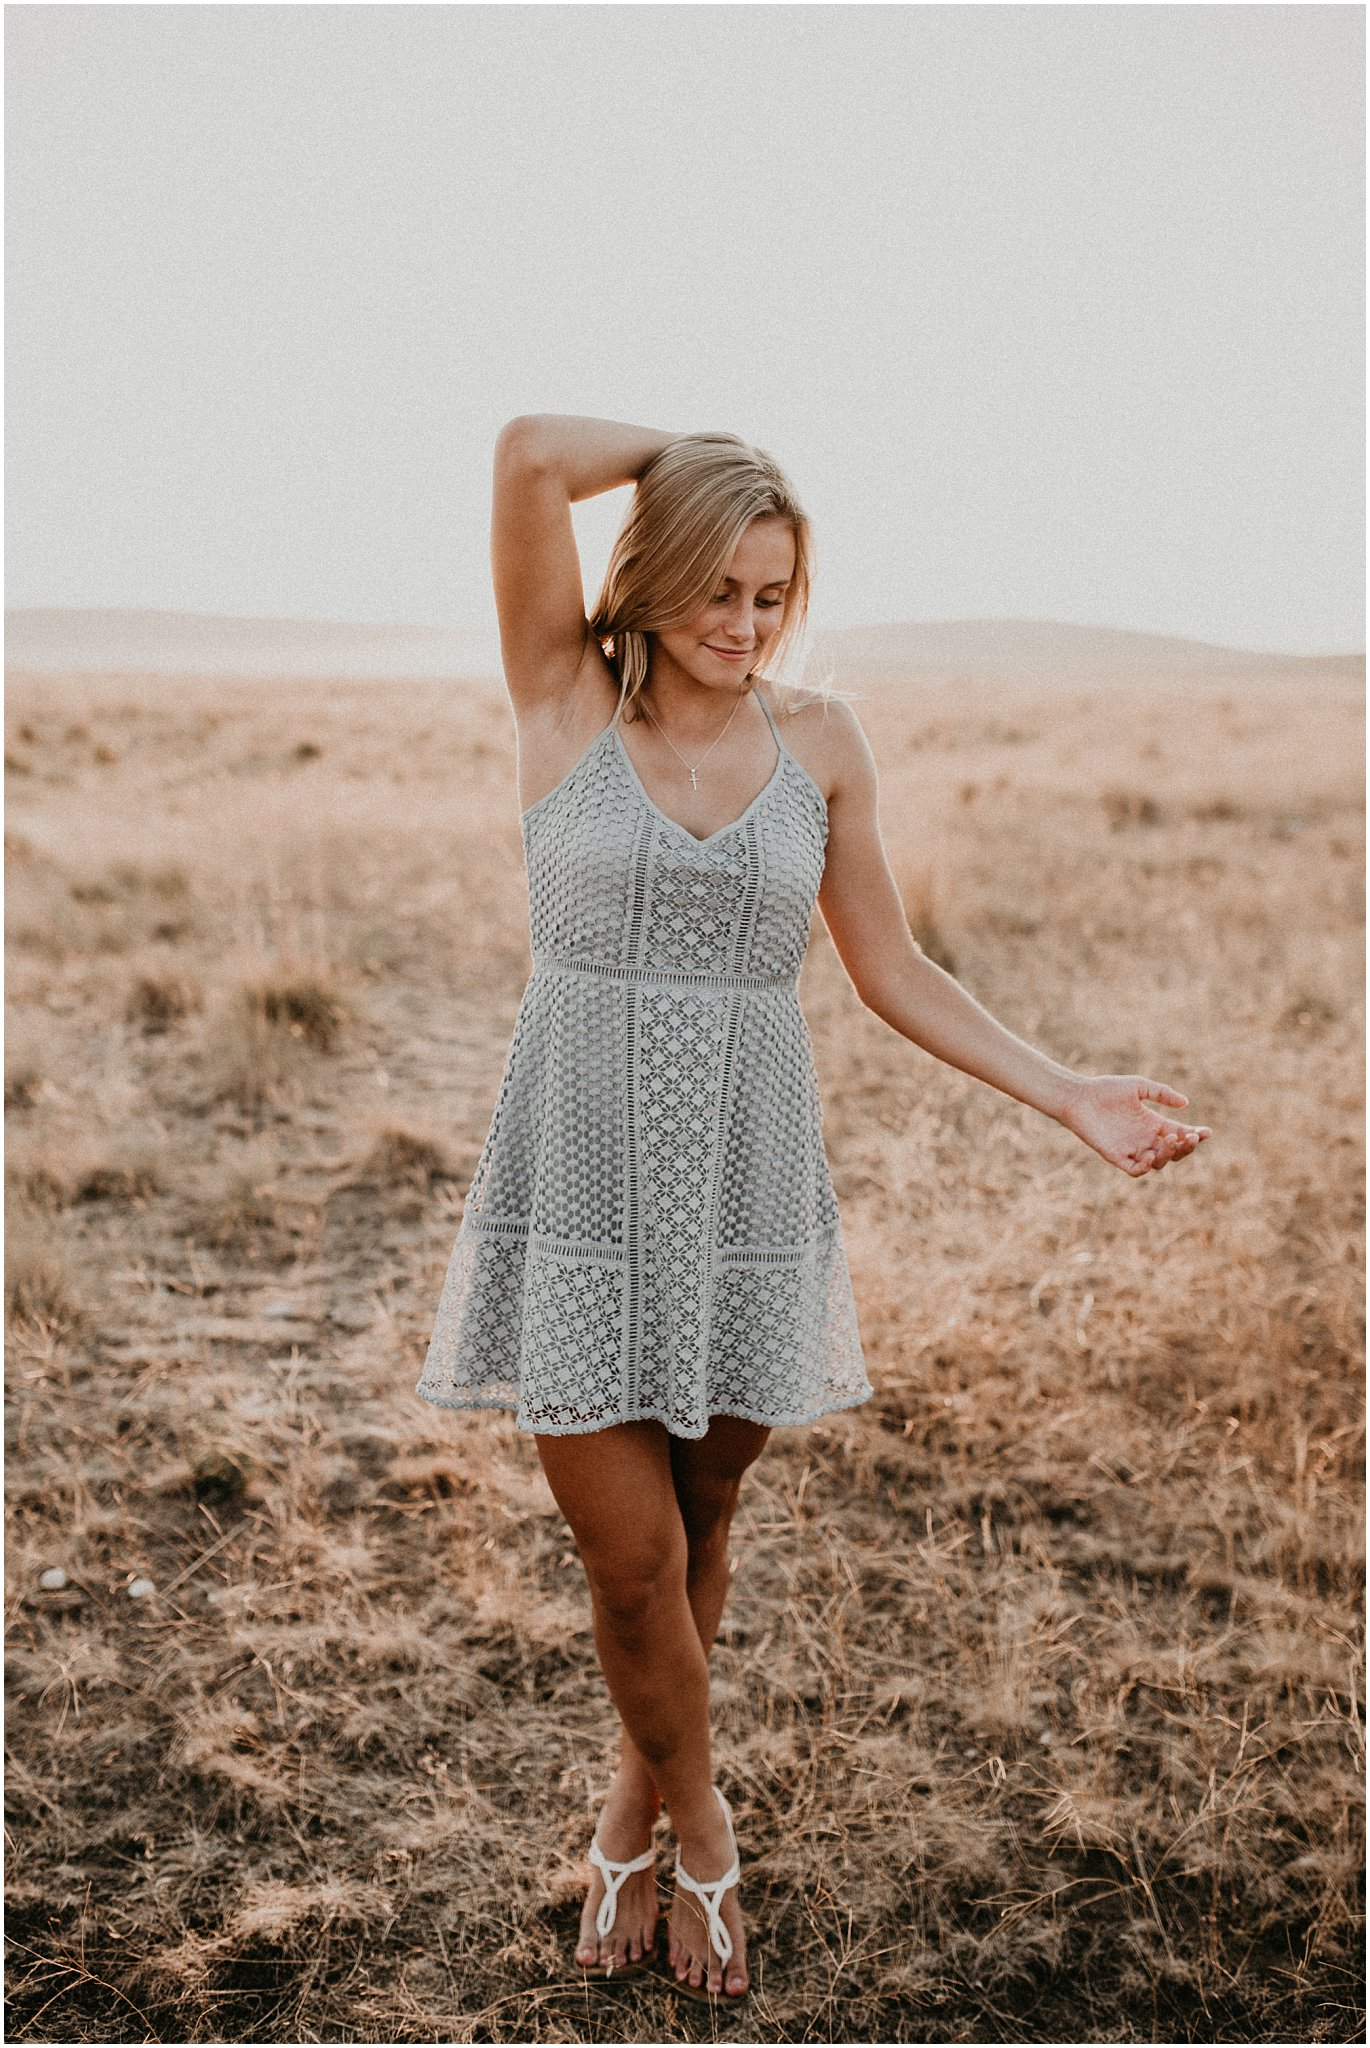 Boise Senior Photographer Makayla Madden Photography Unique Fun Kuna Idaho Foothills Desert Summer Senior Session Golden Hour Posing Idaho Beauty Dance